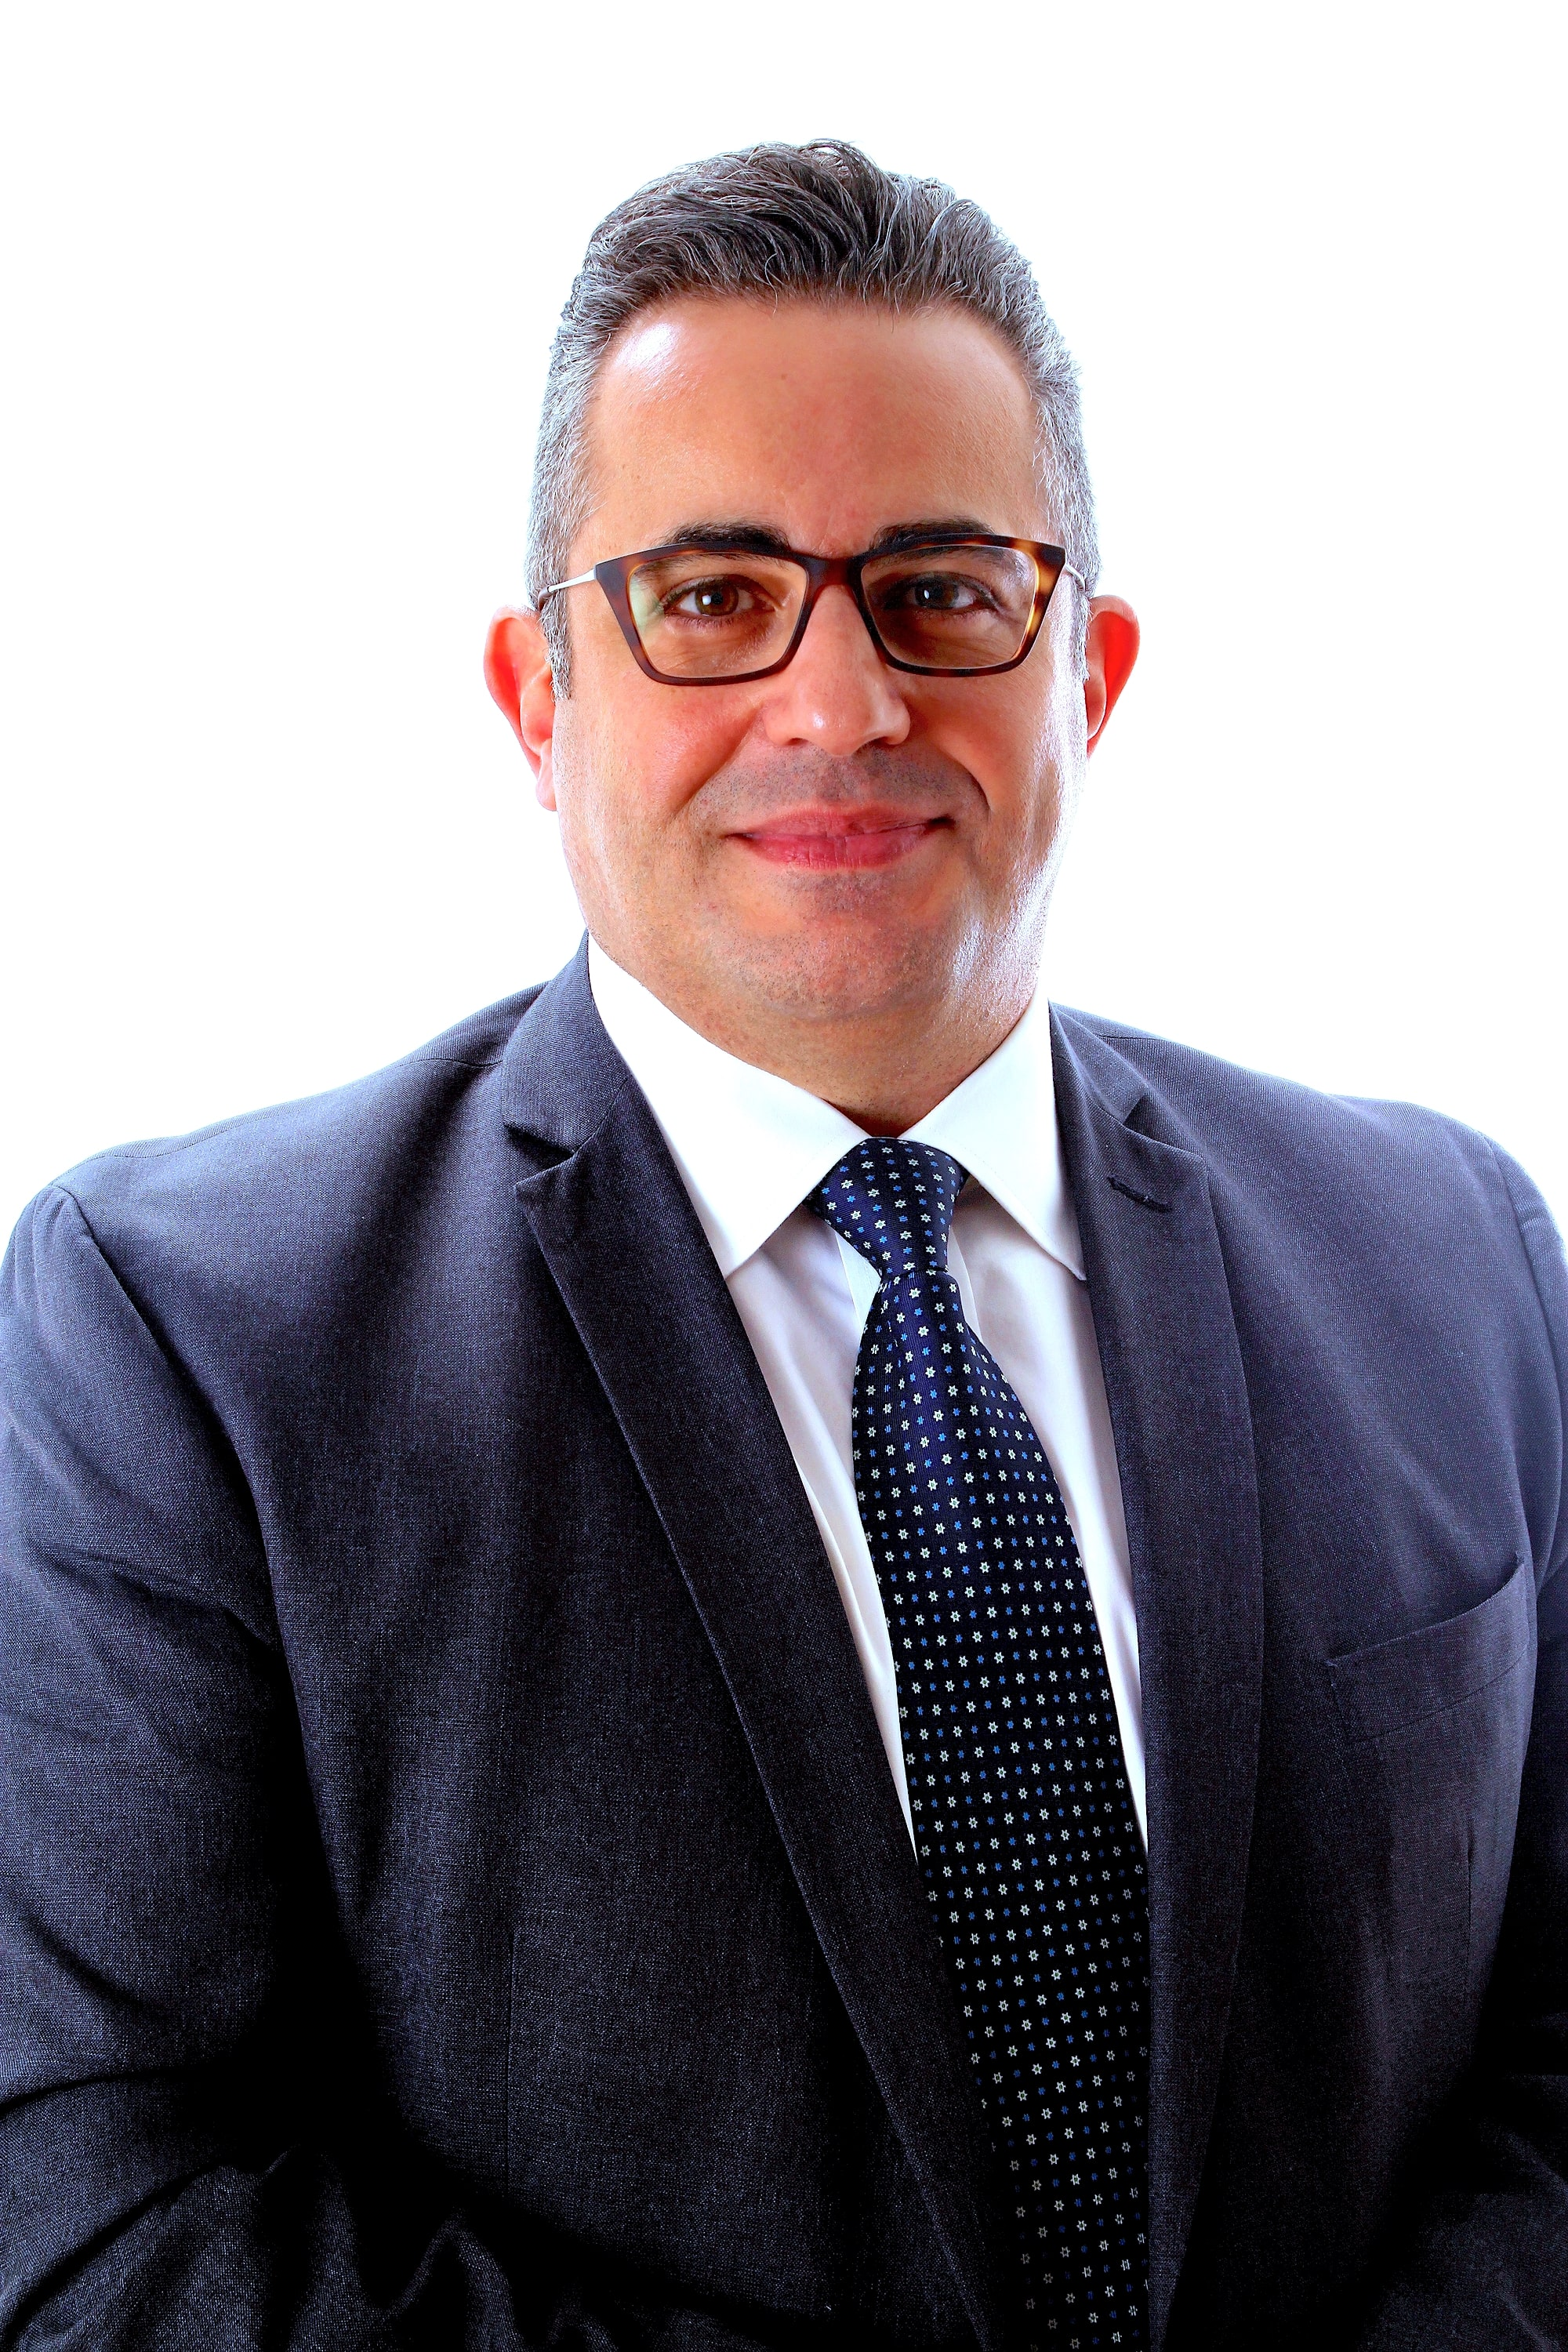 Dr. Elbabaa, neurosurgeon